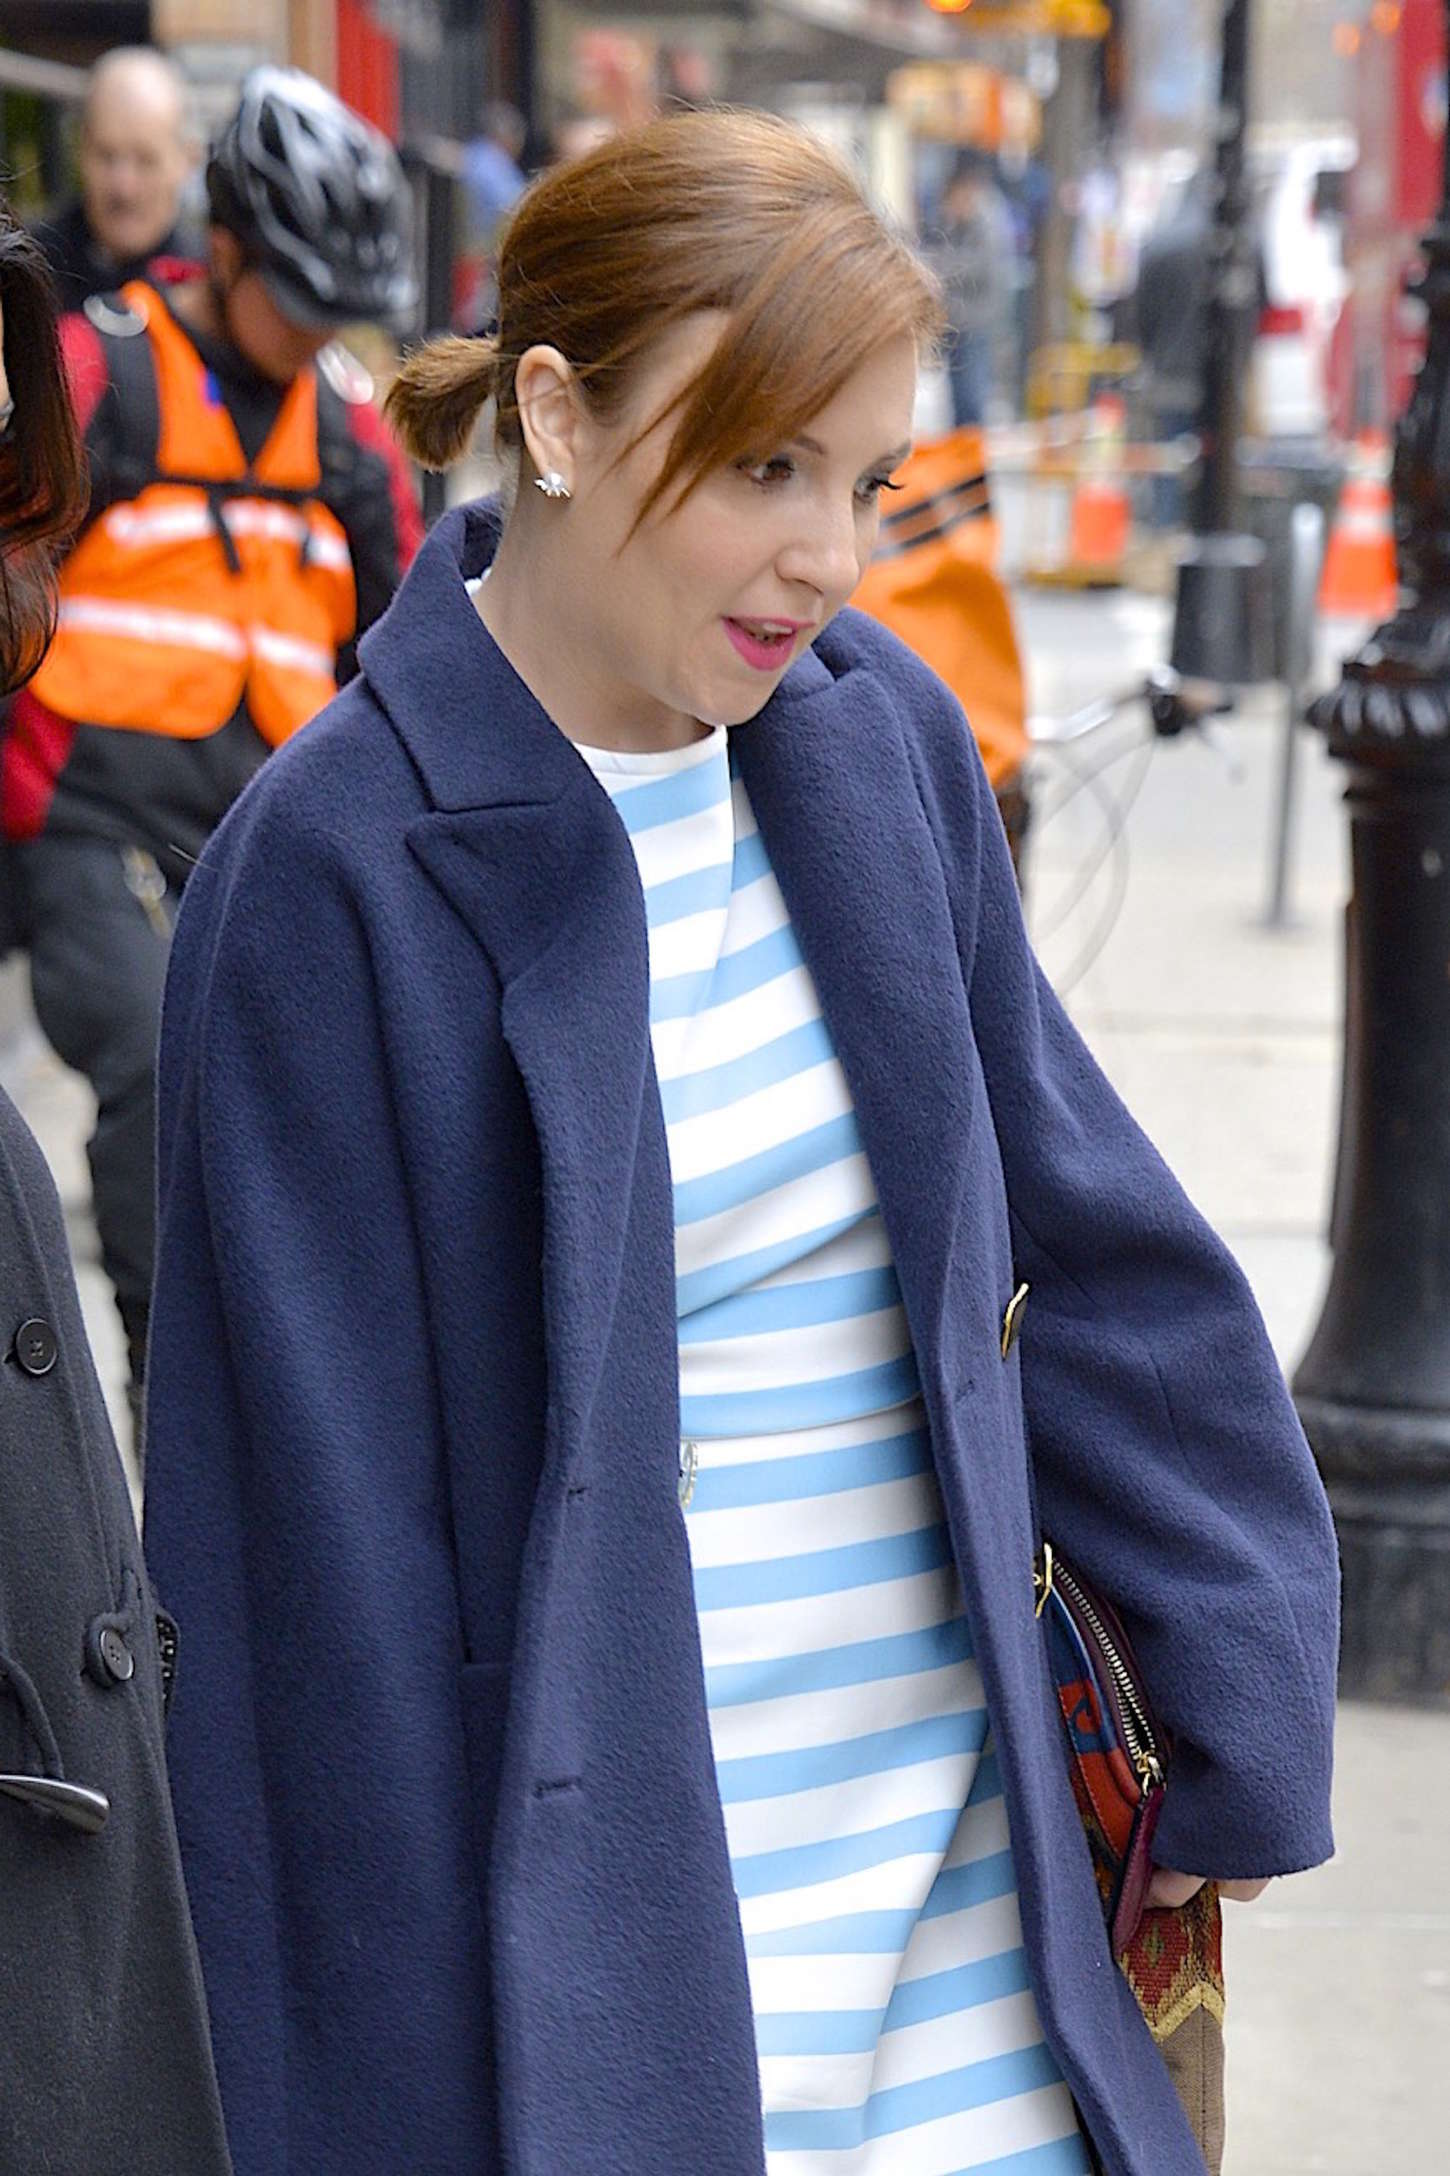 Lena Dunham Leaving her hotel in New York